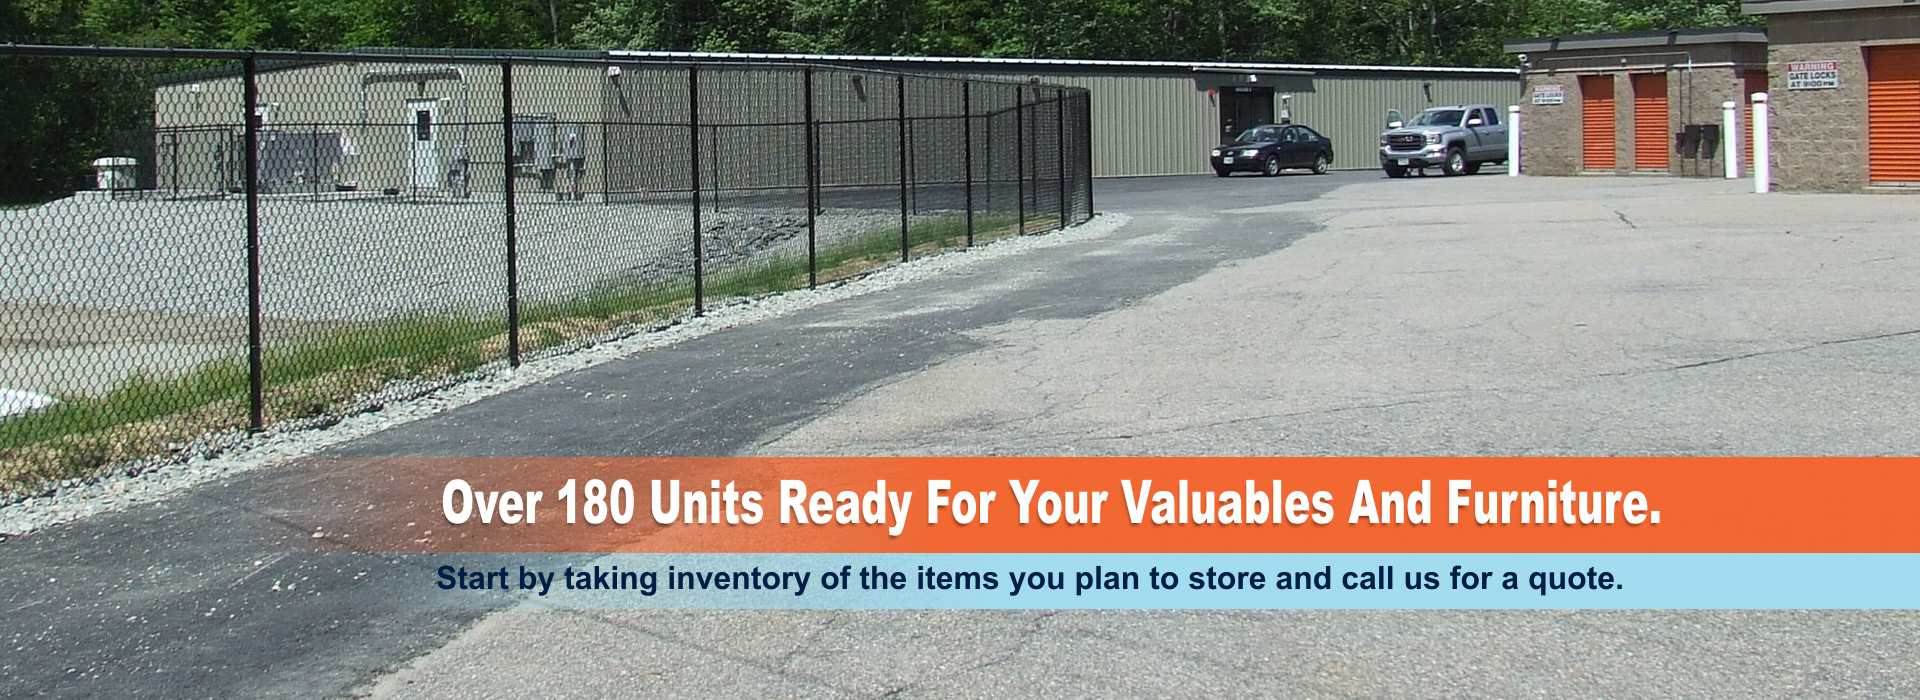 Over 180 units ready for your valuables